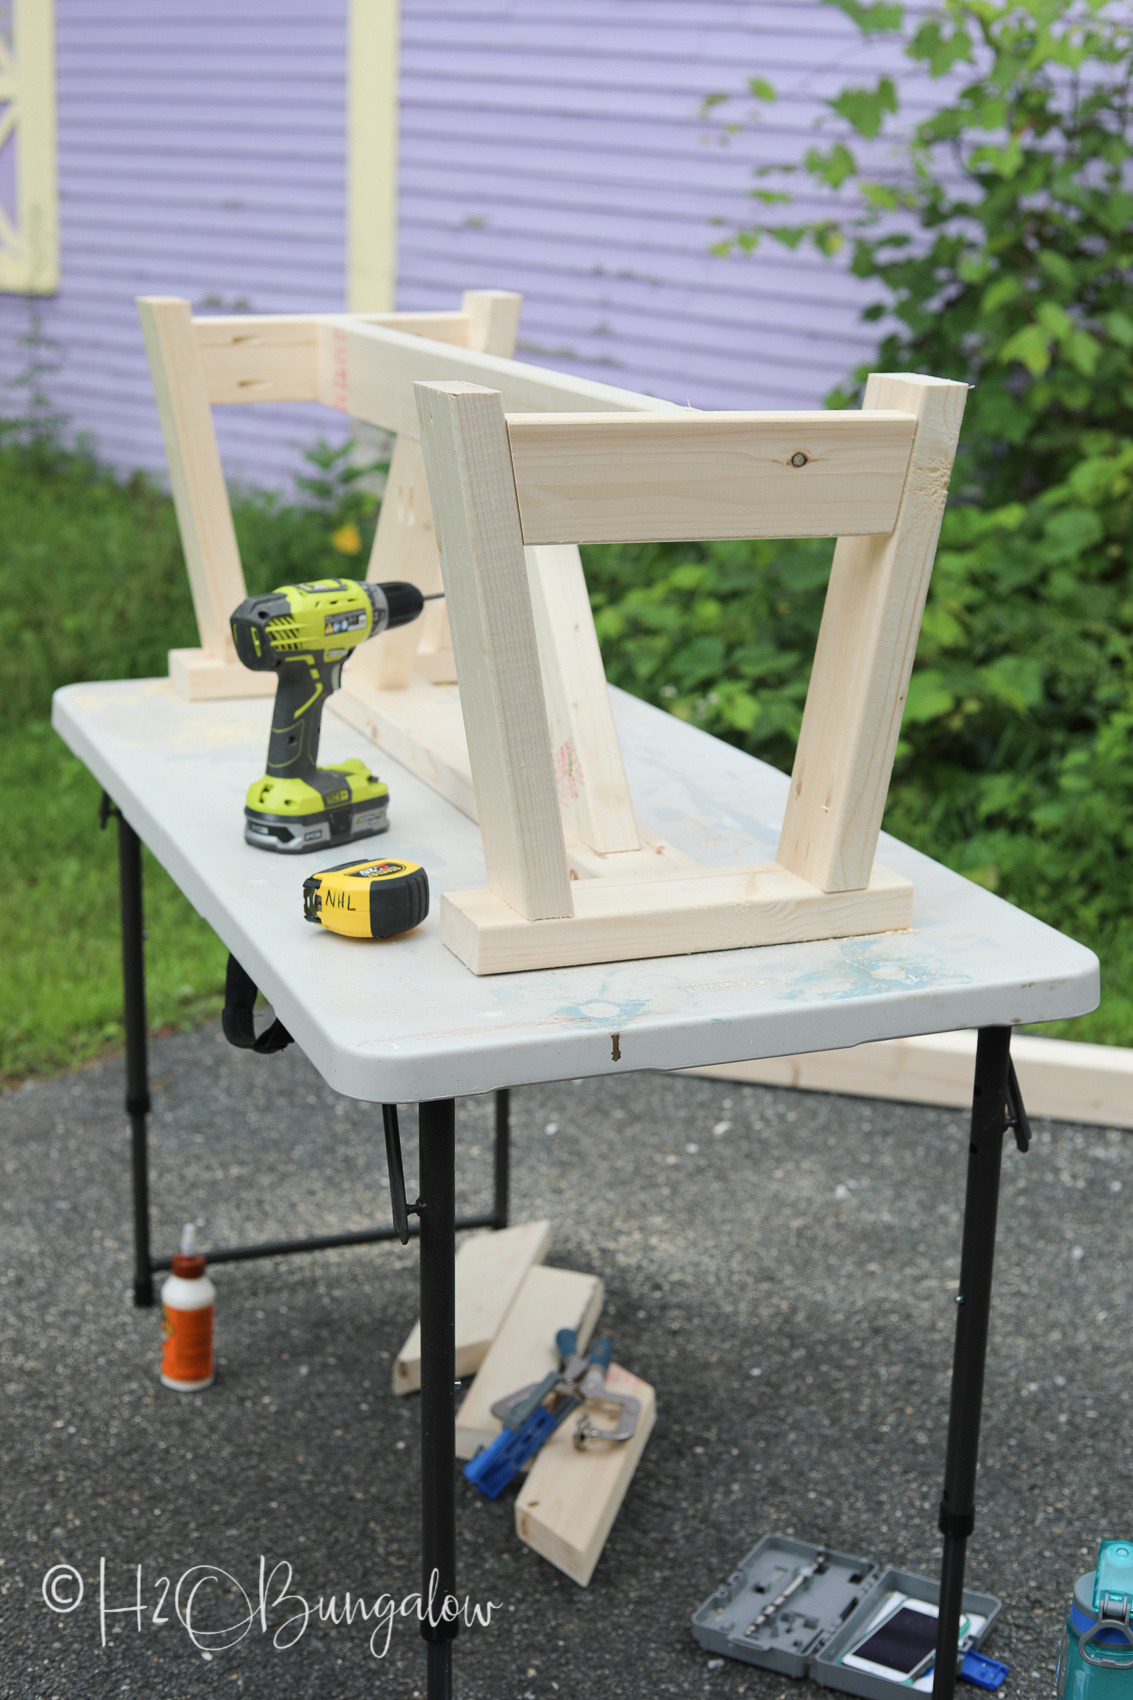 Attaching bench spreaders for a DIY modern rustic wood bench tutorial